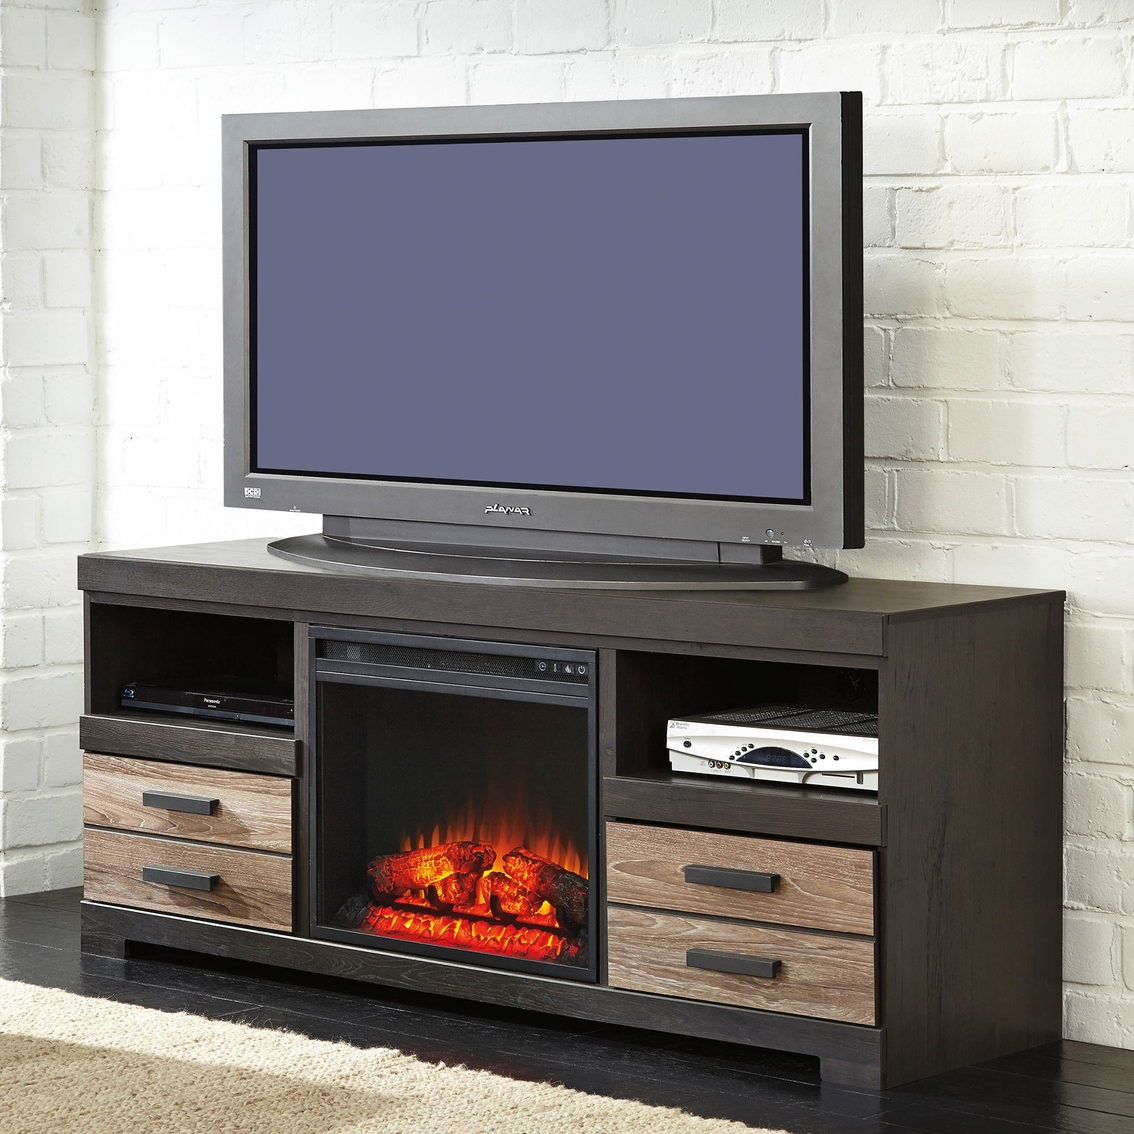 Shop Signature Design by Ashley Harlington TV Stand with Fireplace Insert and other name brand Media Furniture Home & Appliances at The Exchange. You